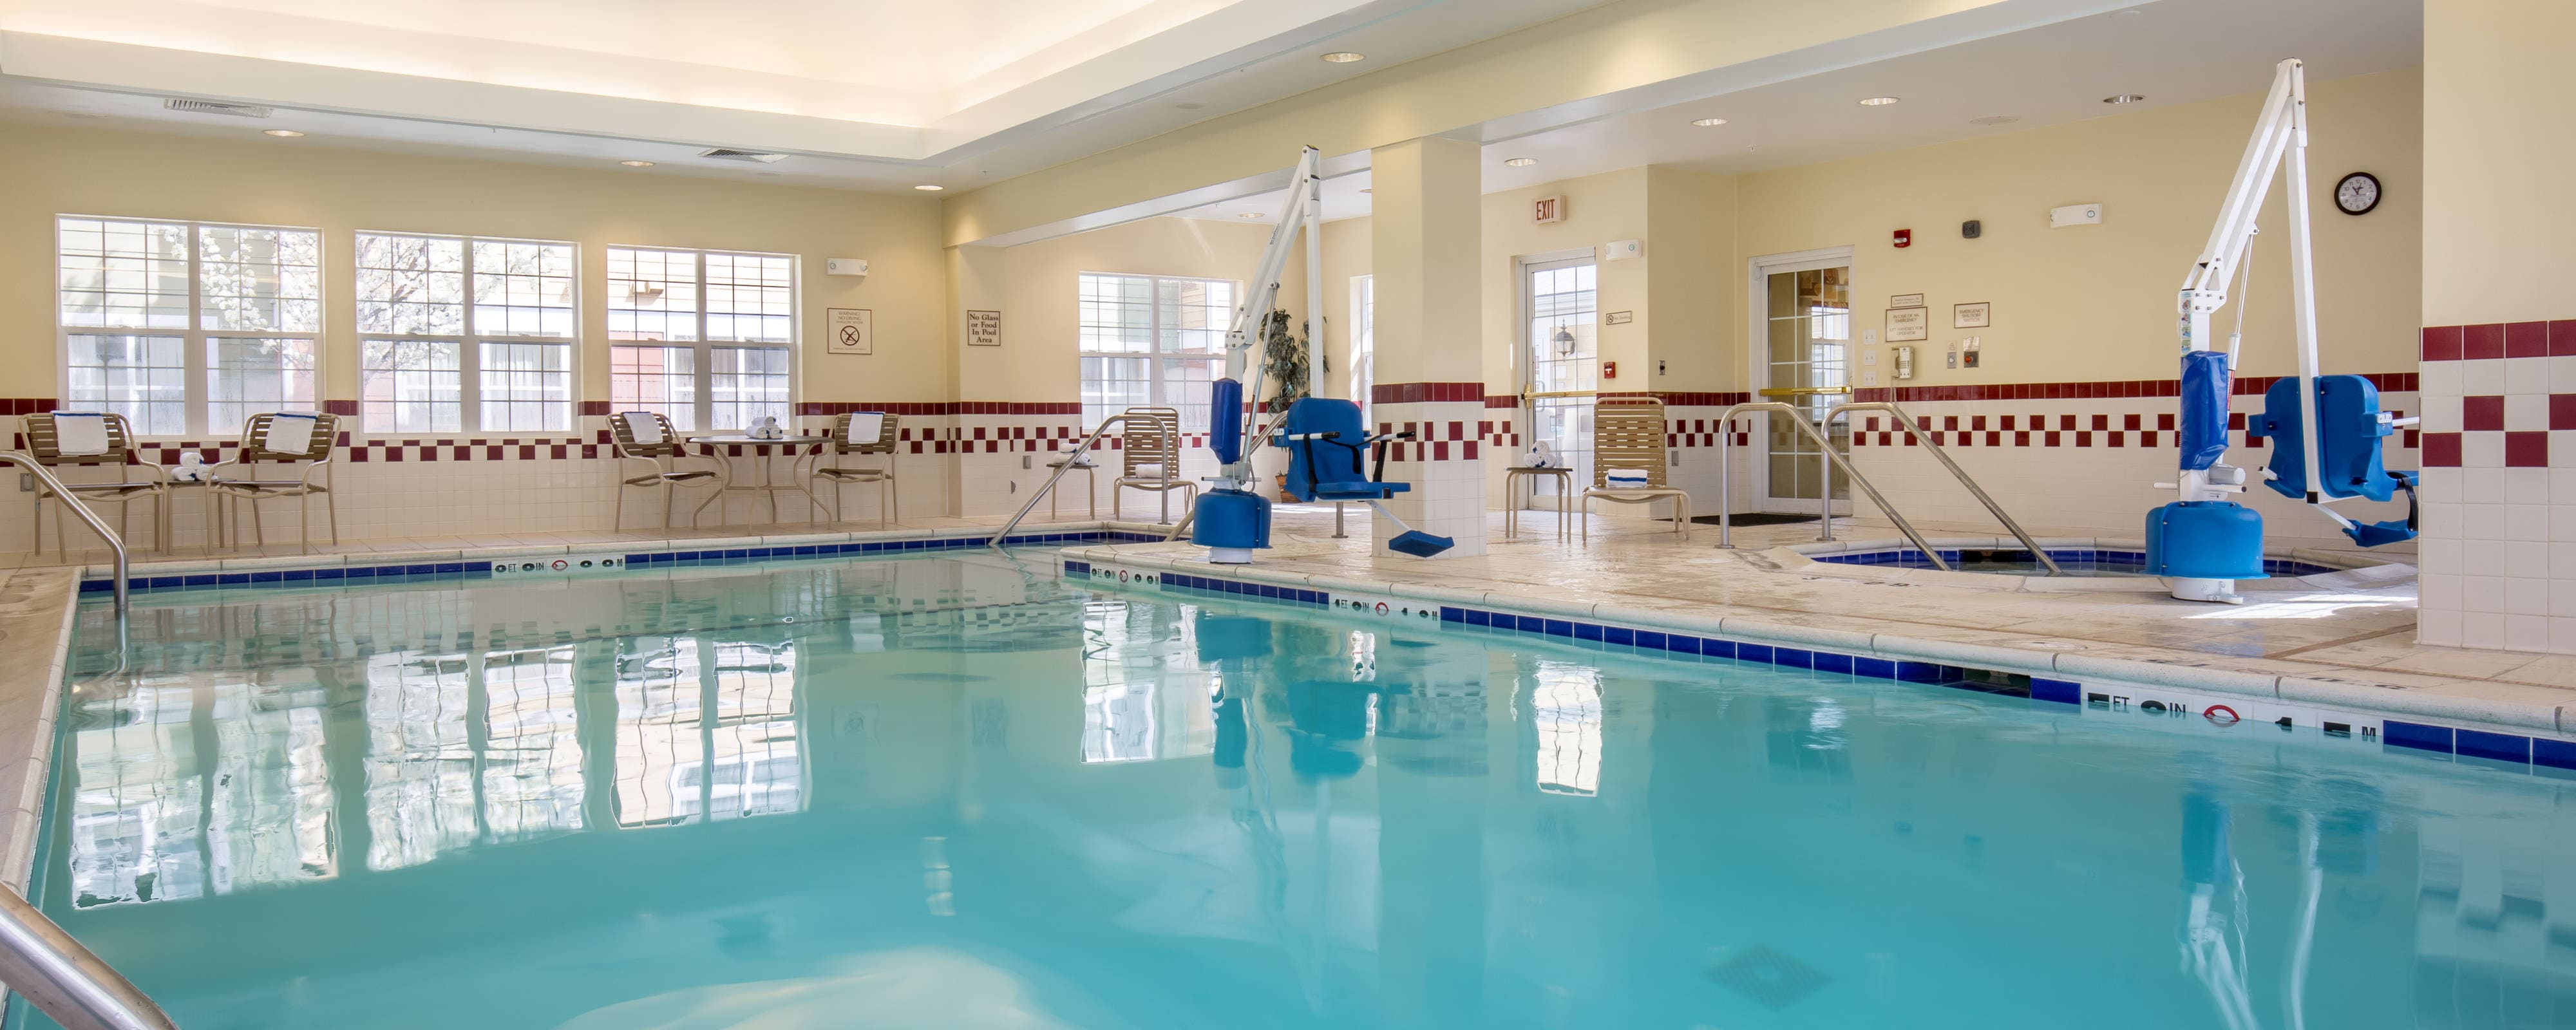 Spokane Washington Hotel Indoor Pool